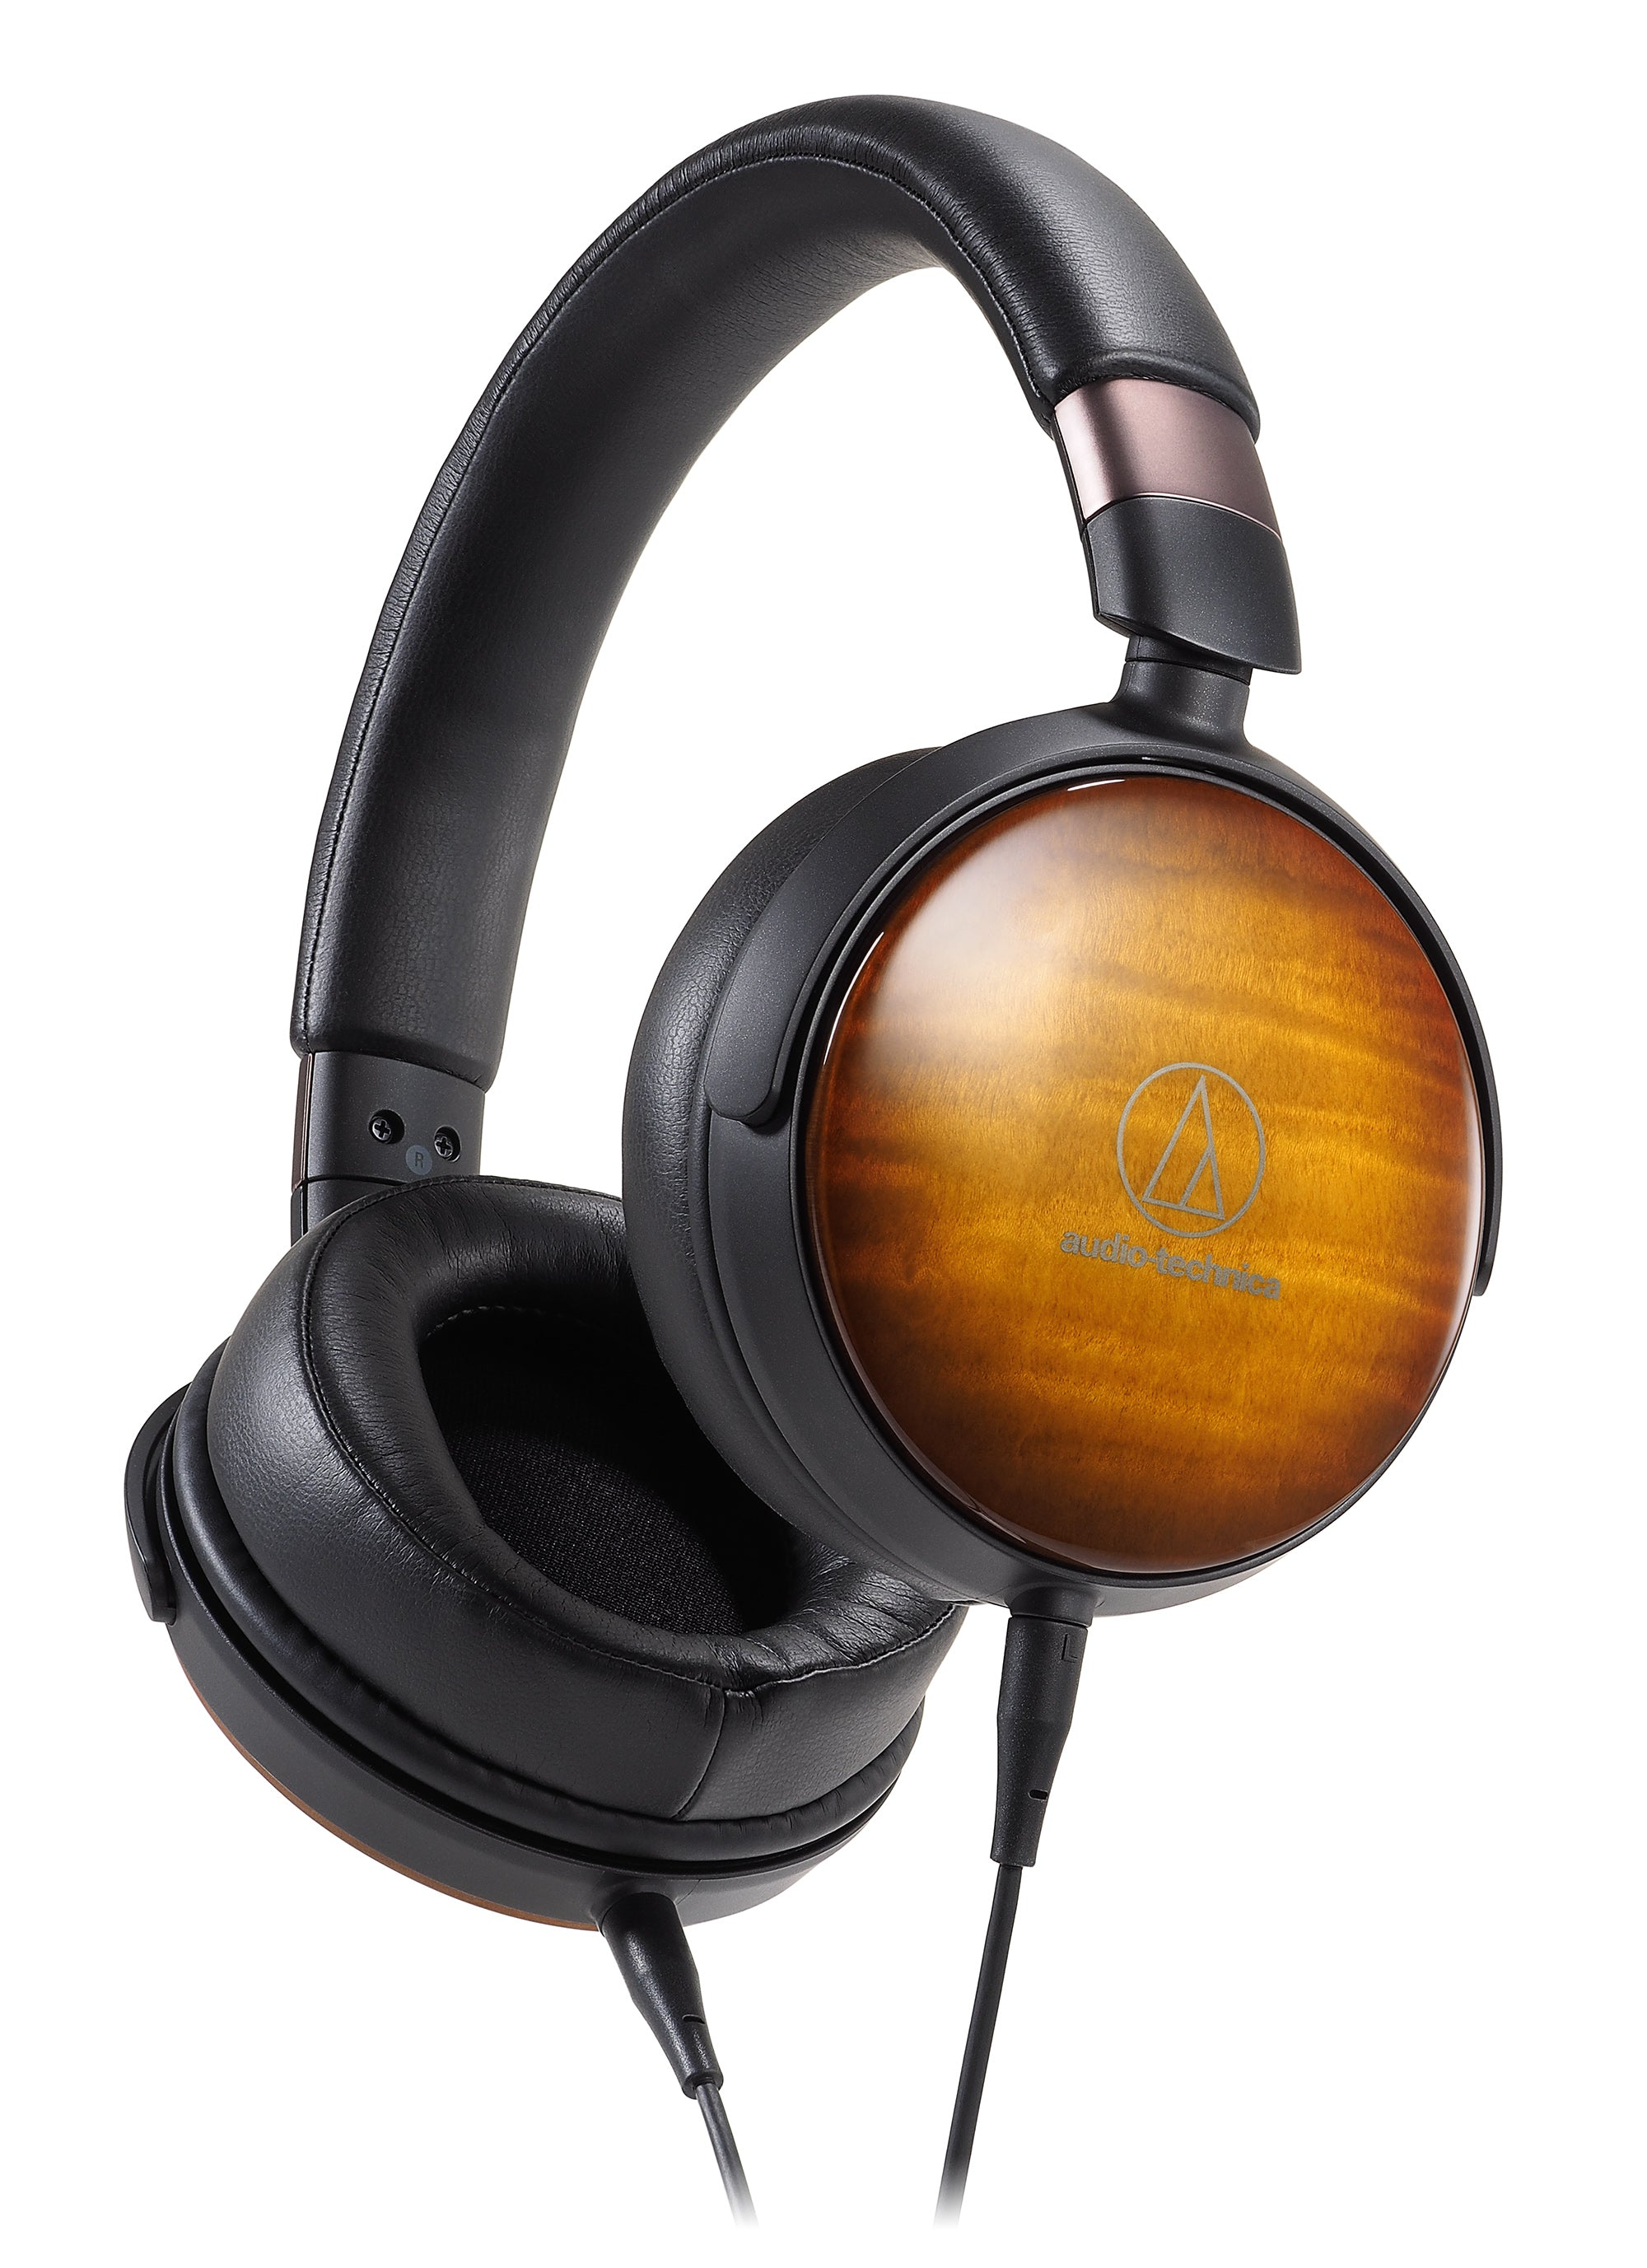 Audio Technica ATH-WP900 Around Ear Headphones